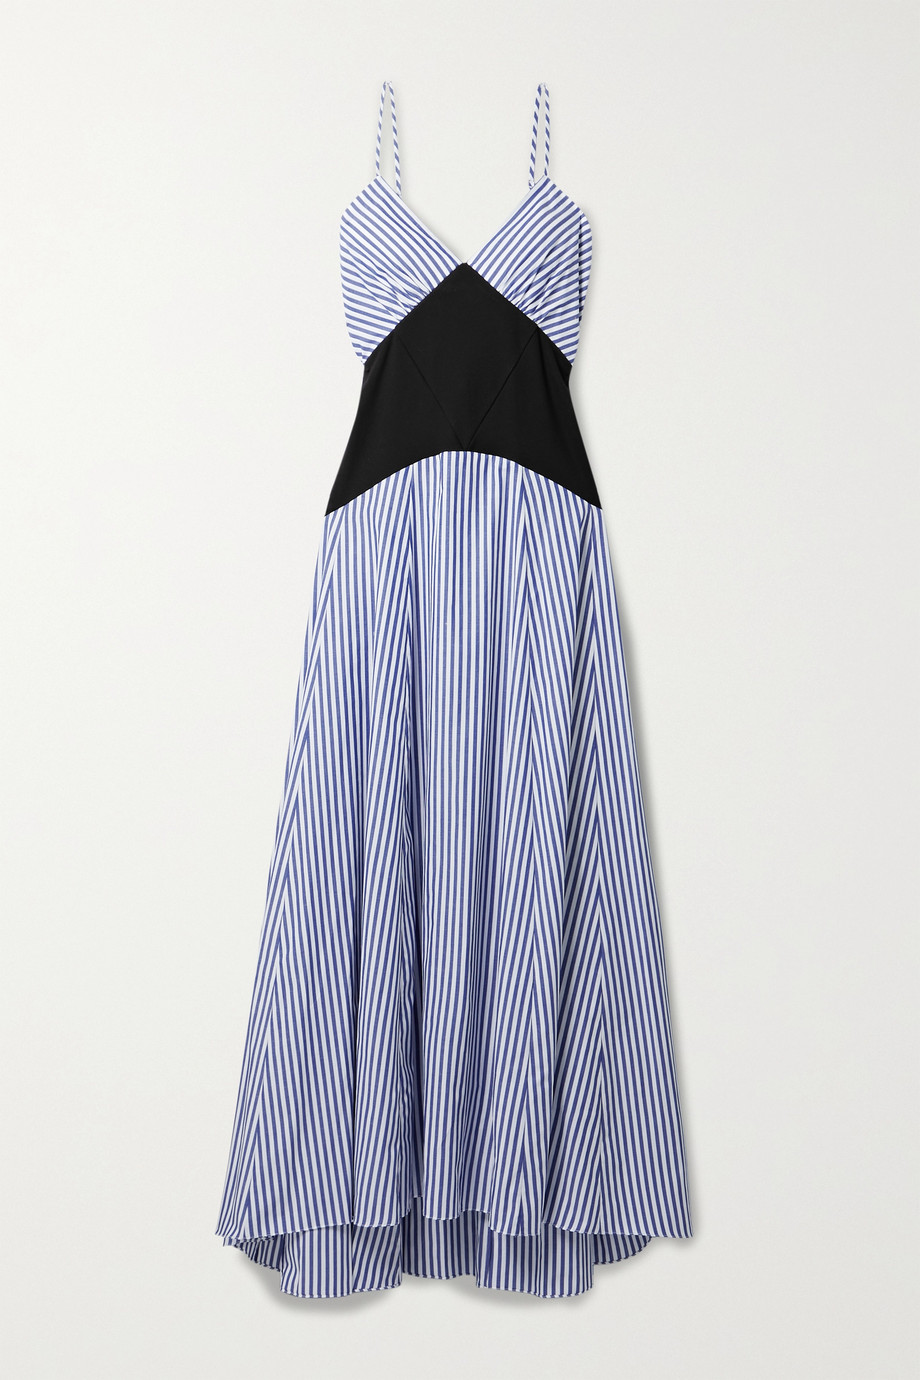 Rosie Assoulin Paneled striped cotton-blend voile and ribbed jersey maxi dress